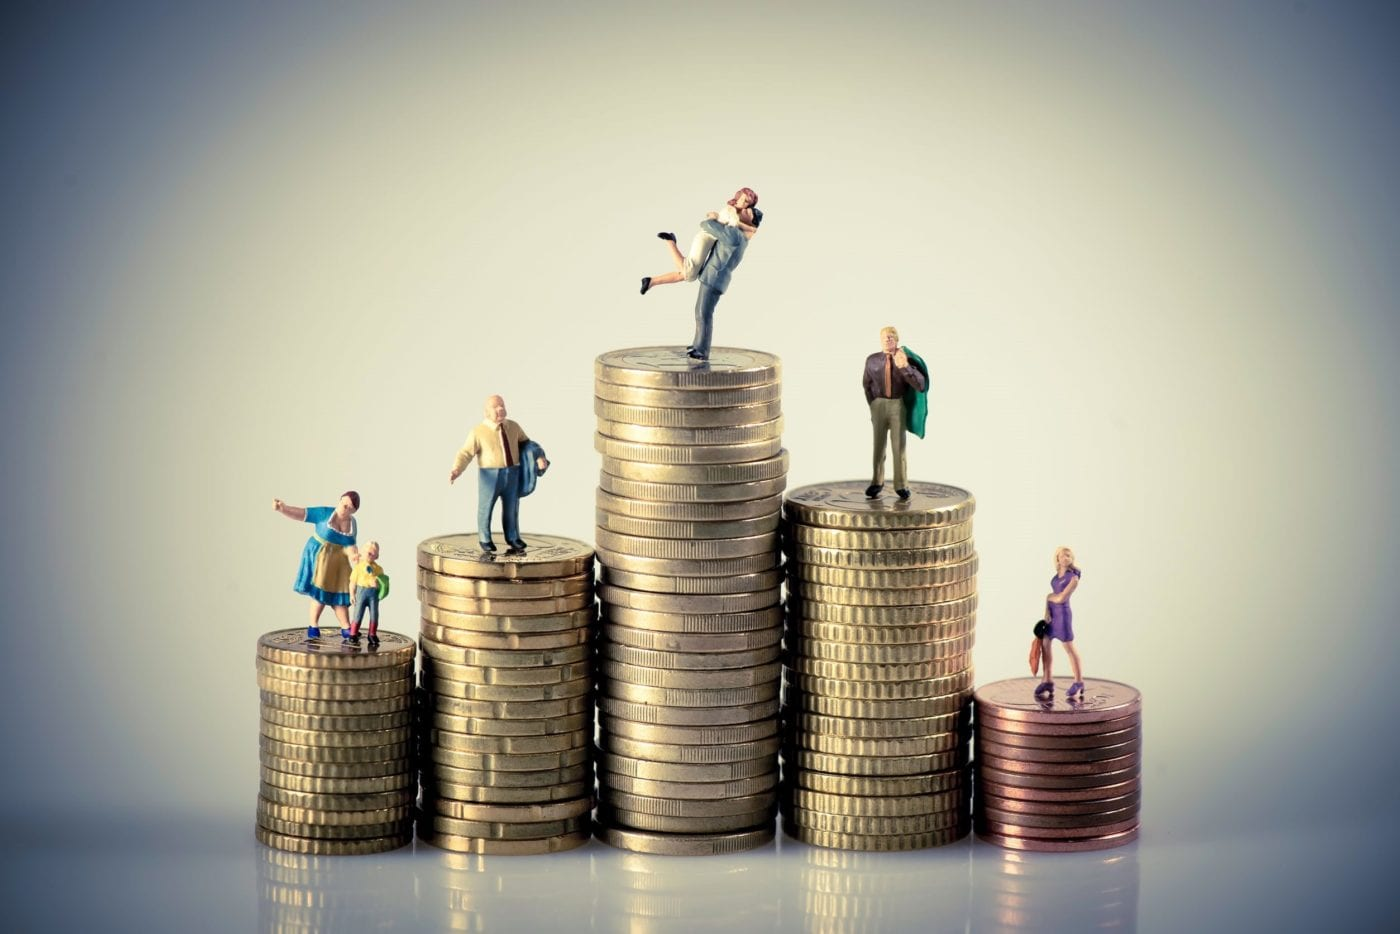 CFOs back marketing as 31% say they will raise budgets over the next year